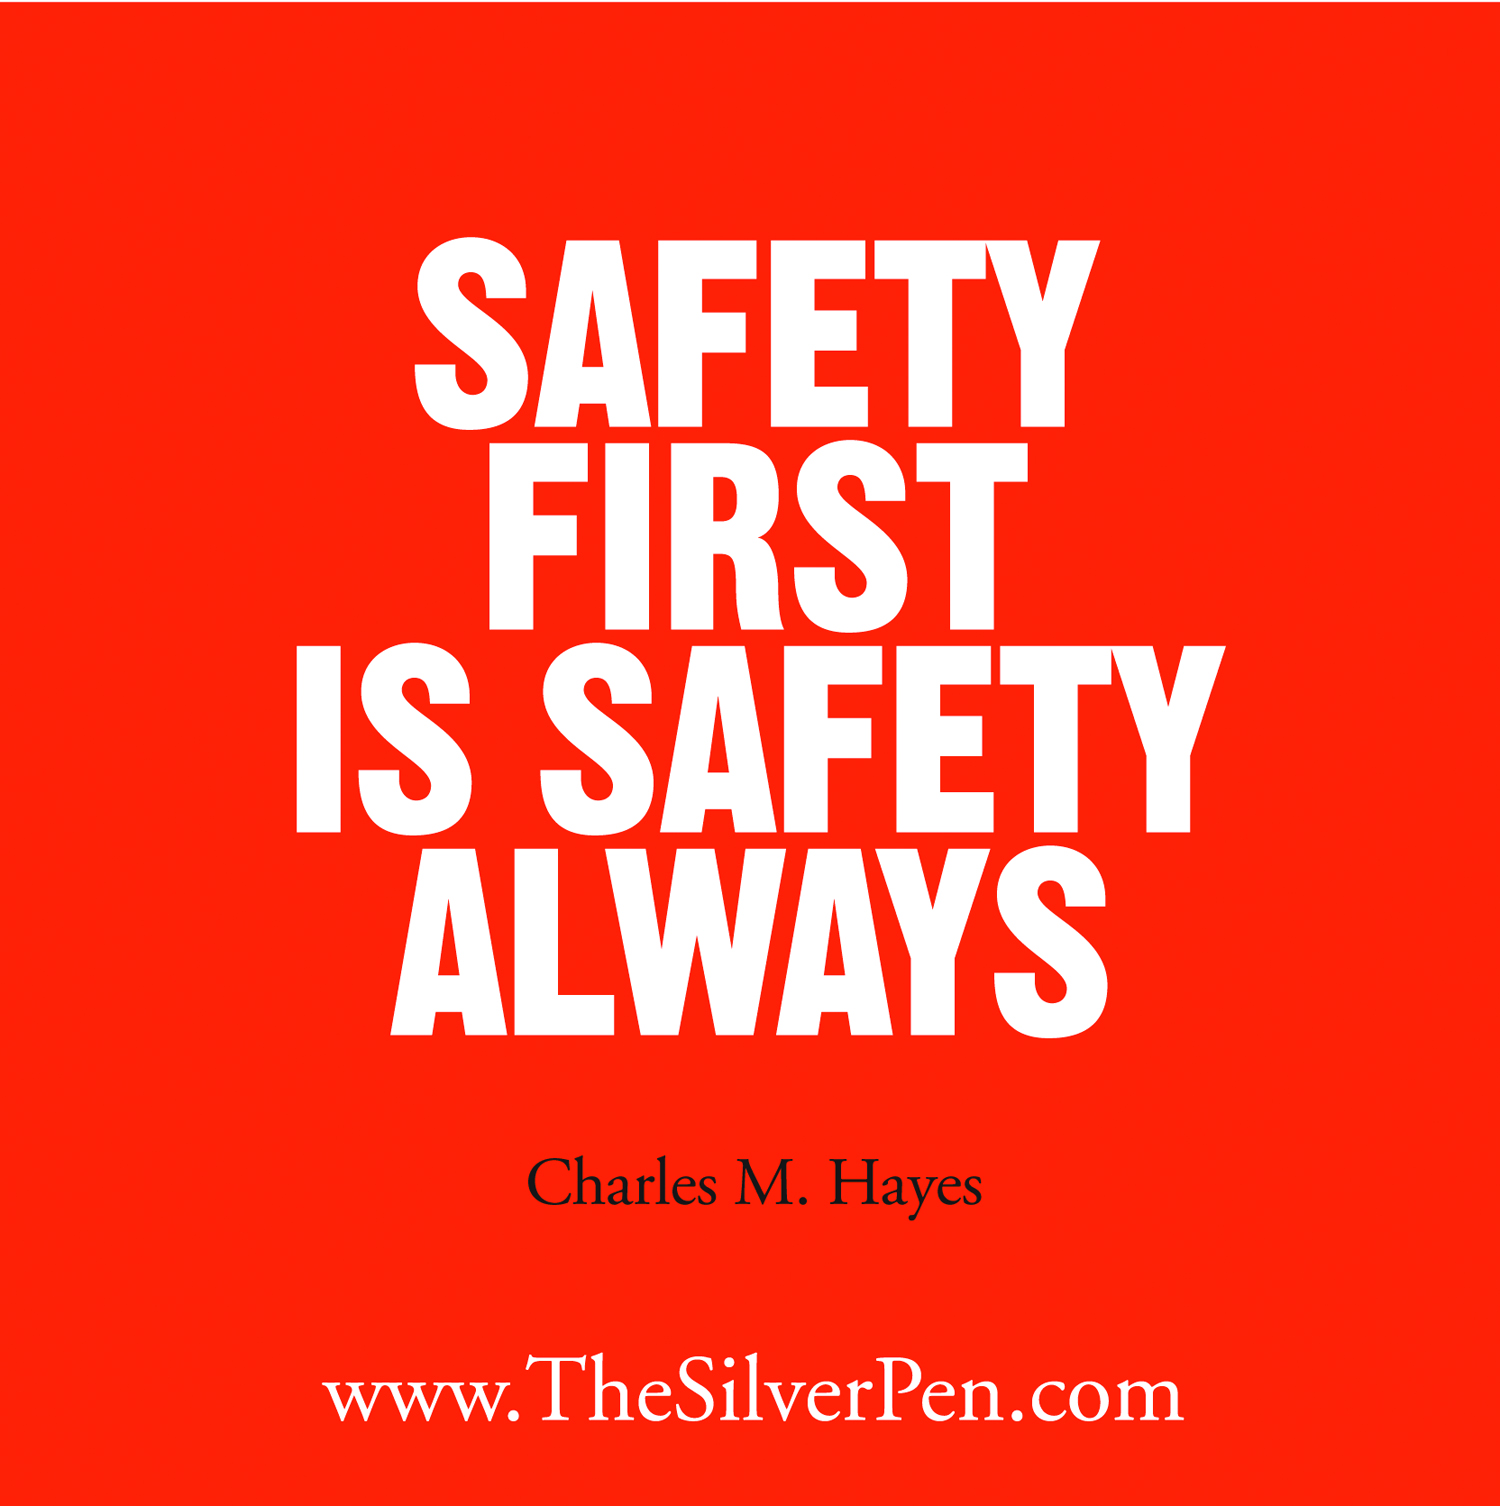 Inspirational Quotes On Pinterest: Inspirational Safety Quotes. QuotesGram